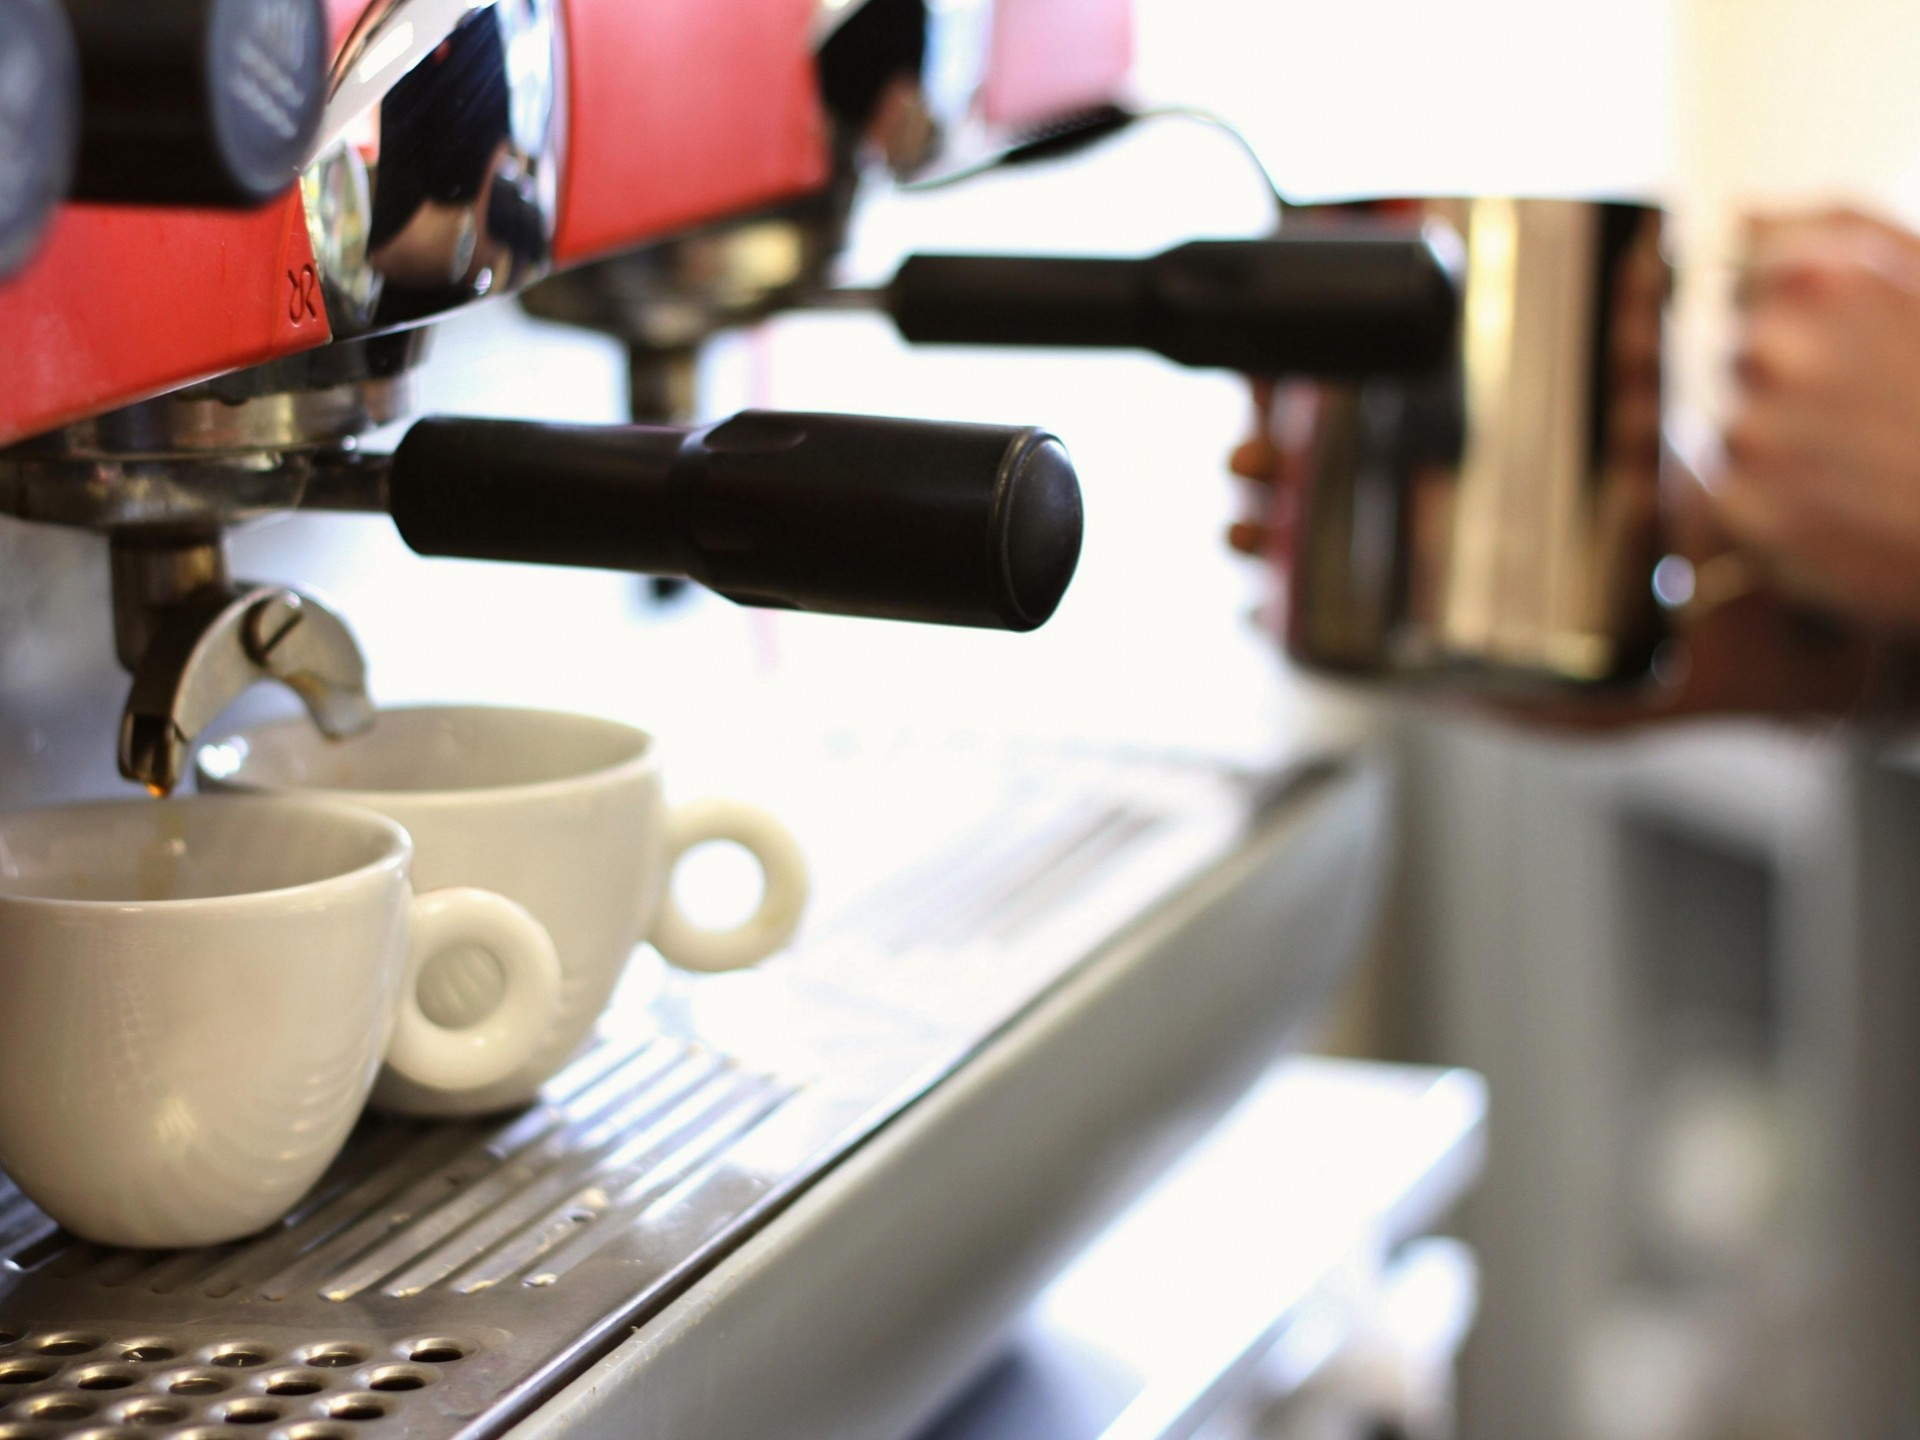 Premier Coffee Shop Business for Sale Cronulla NSW